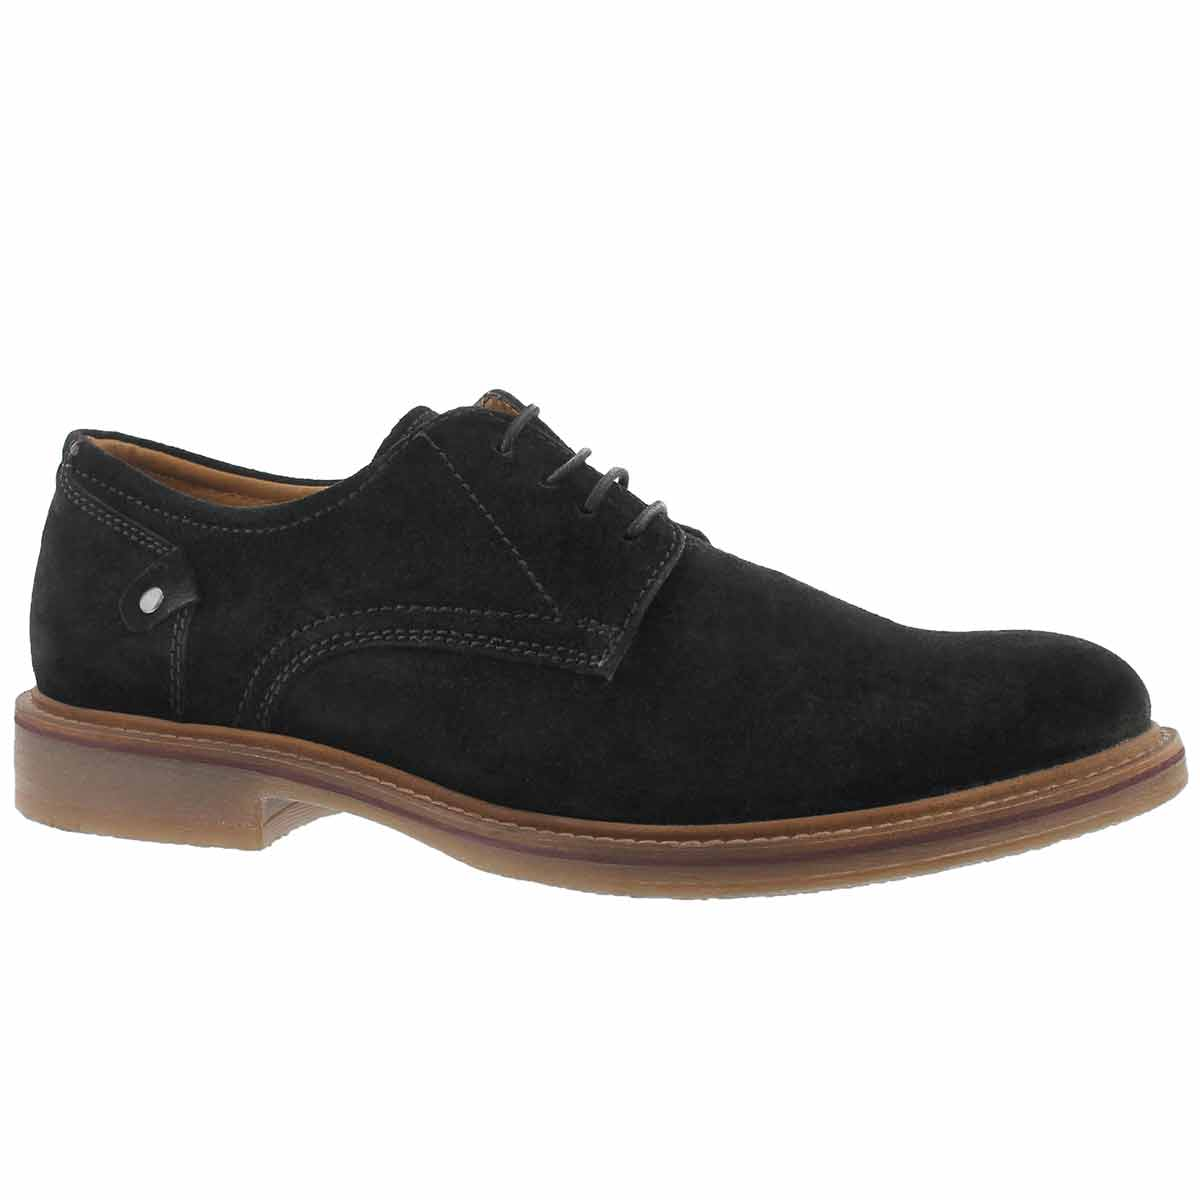 Men's ANDY black lace up casual oxfords